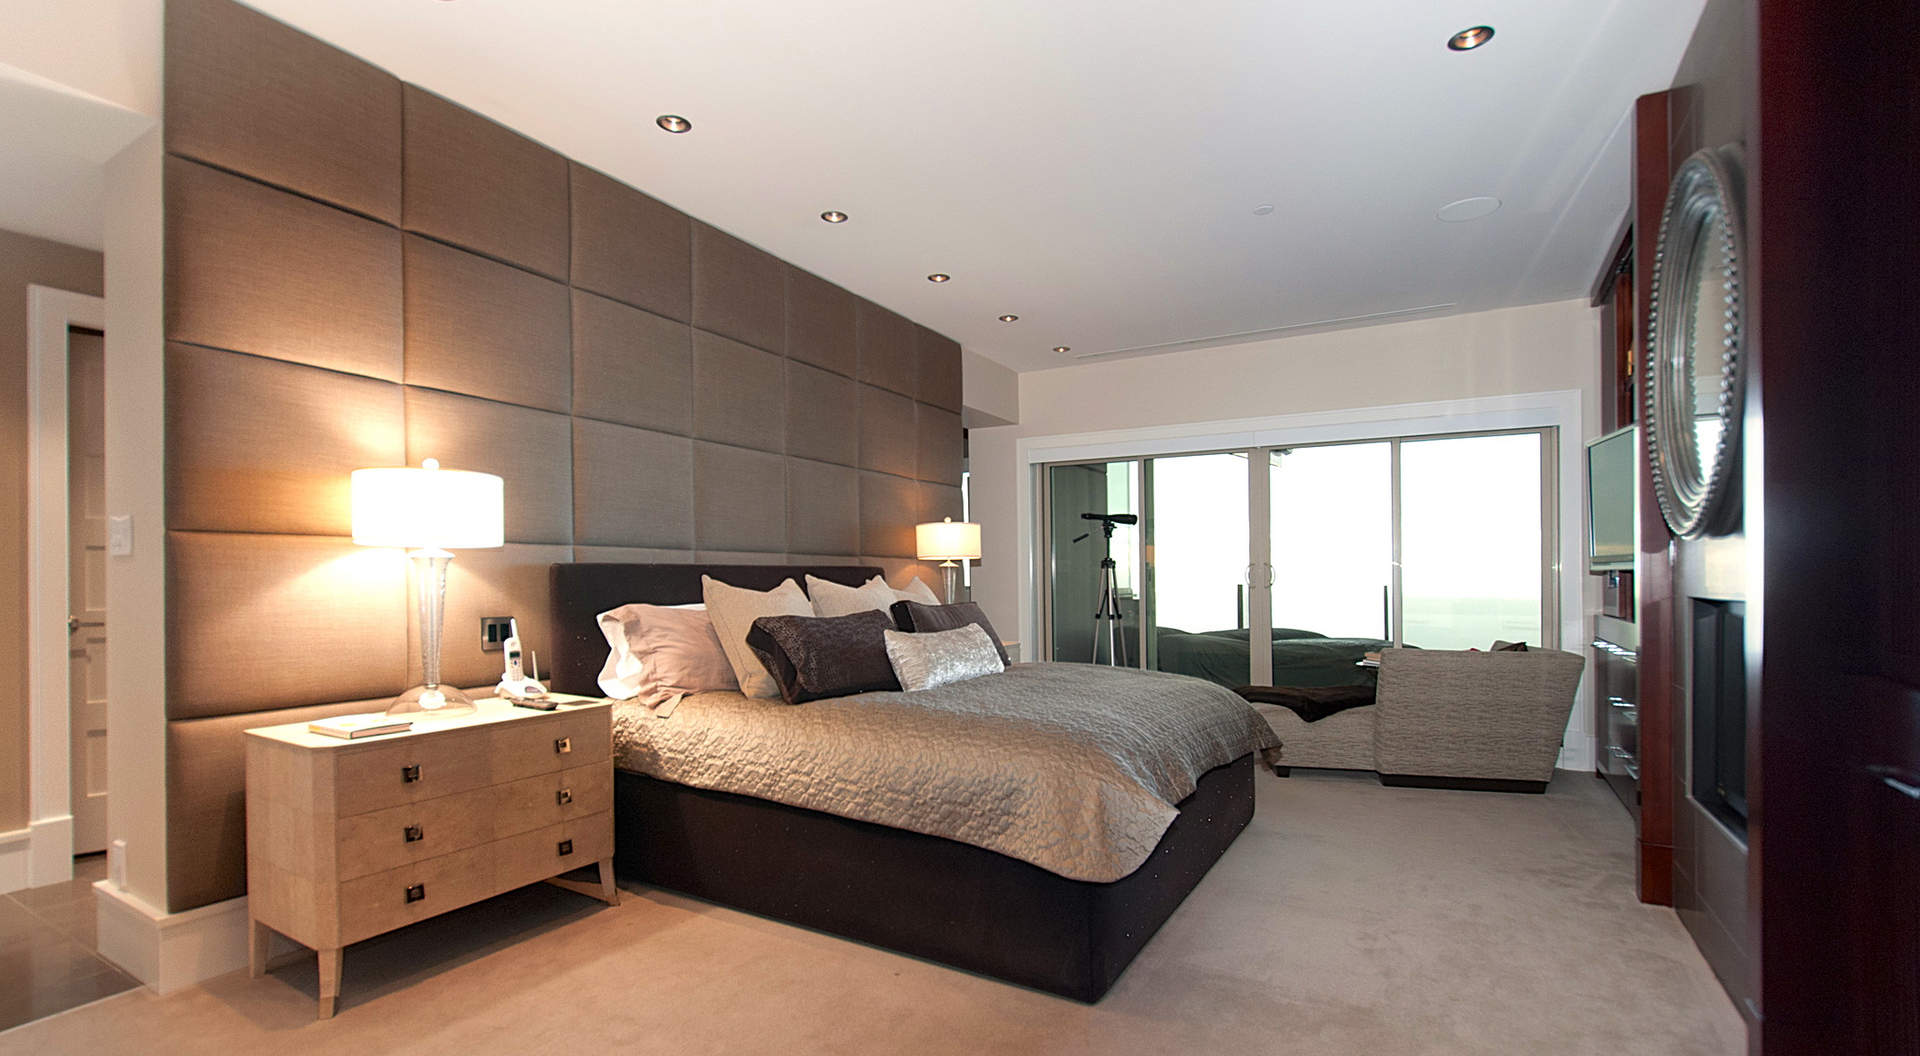 Penthouse master bedroom interior design ideas for Simple master bedroom designs pictures